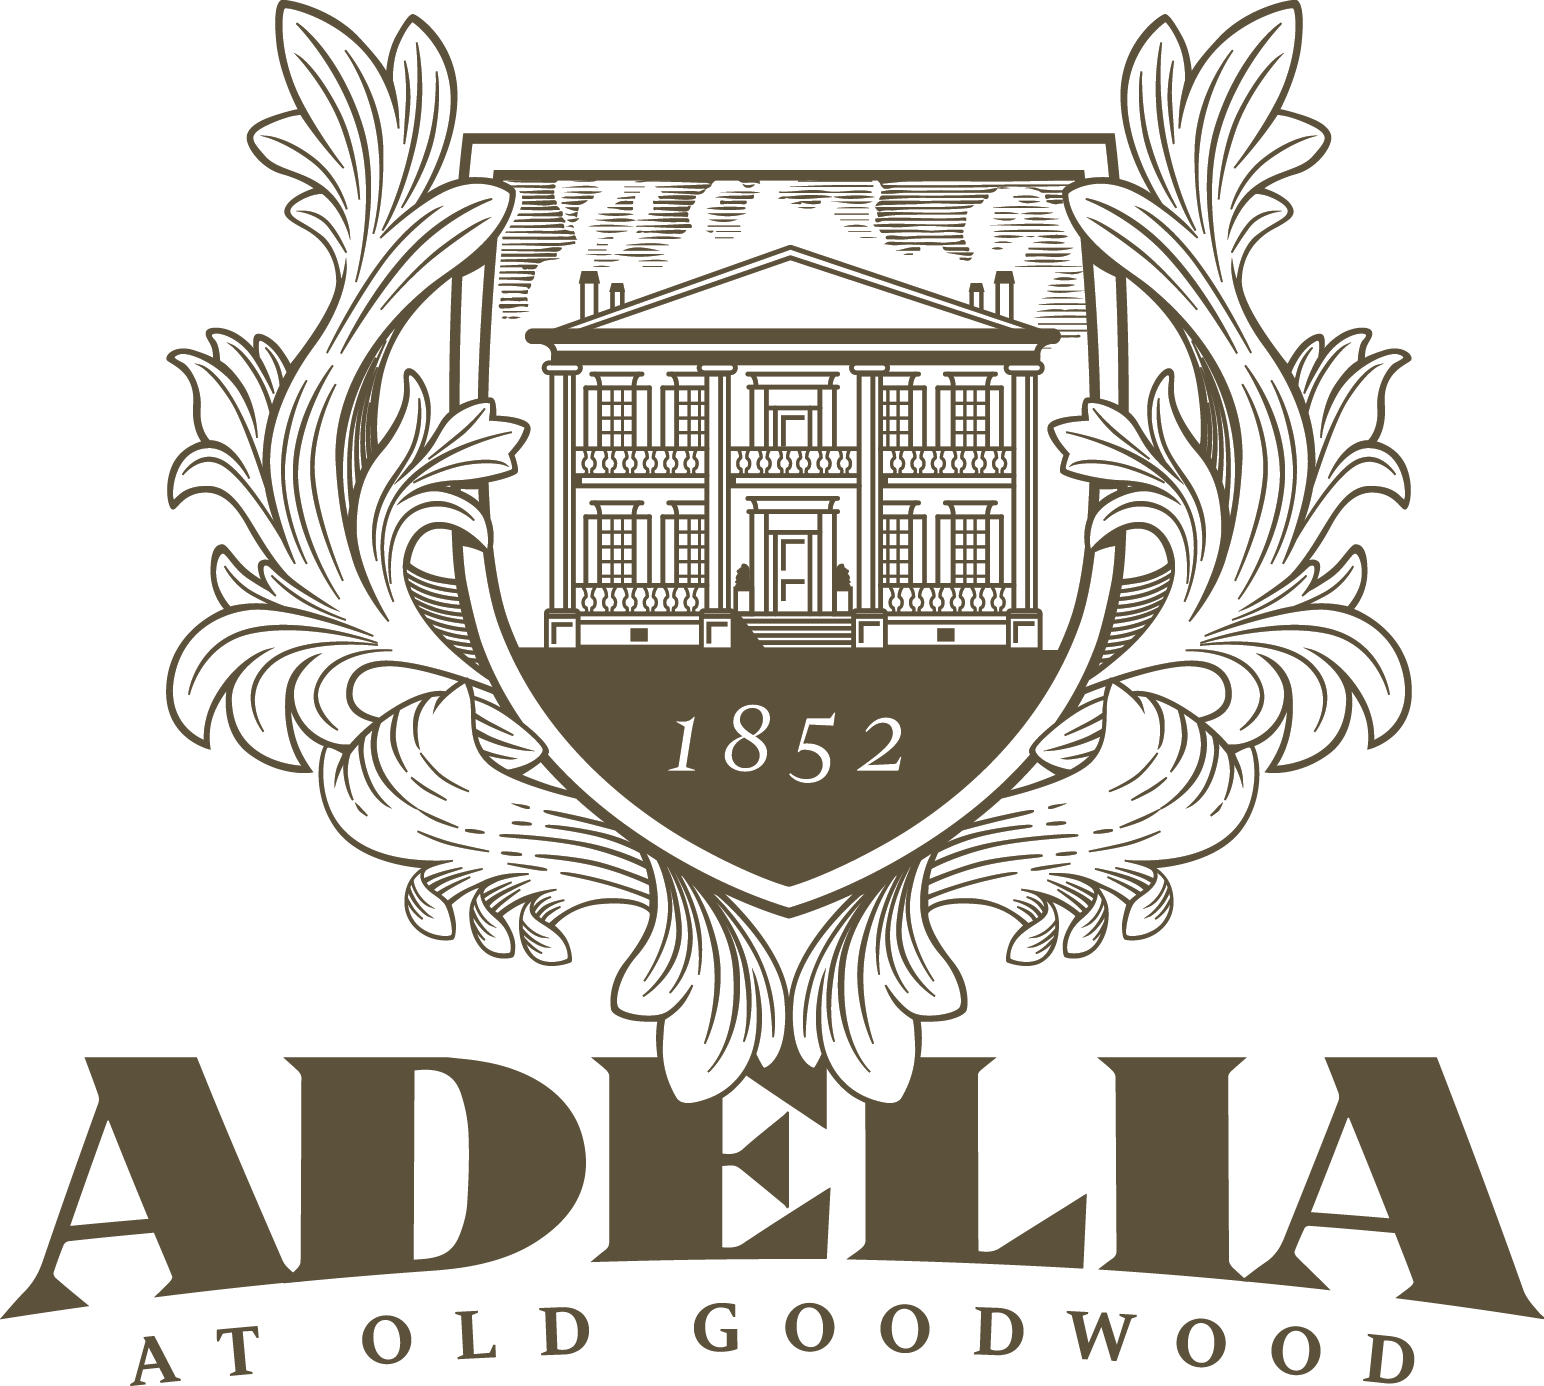 Adelia at Goodwood Plantation